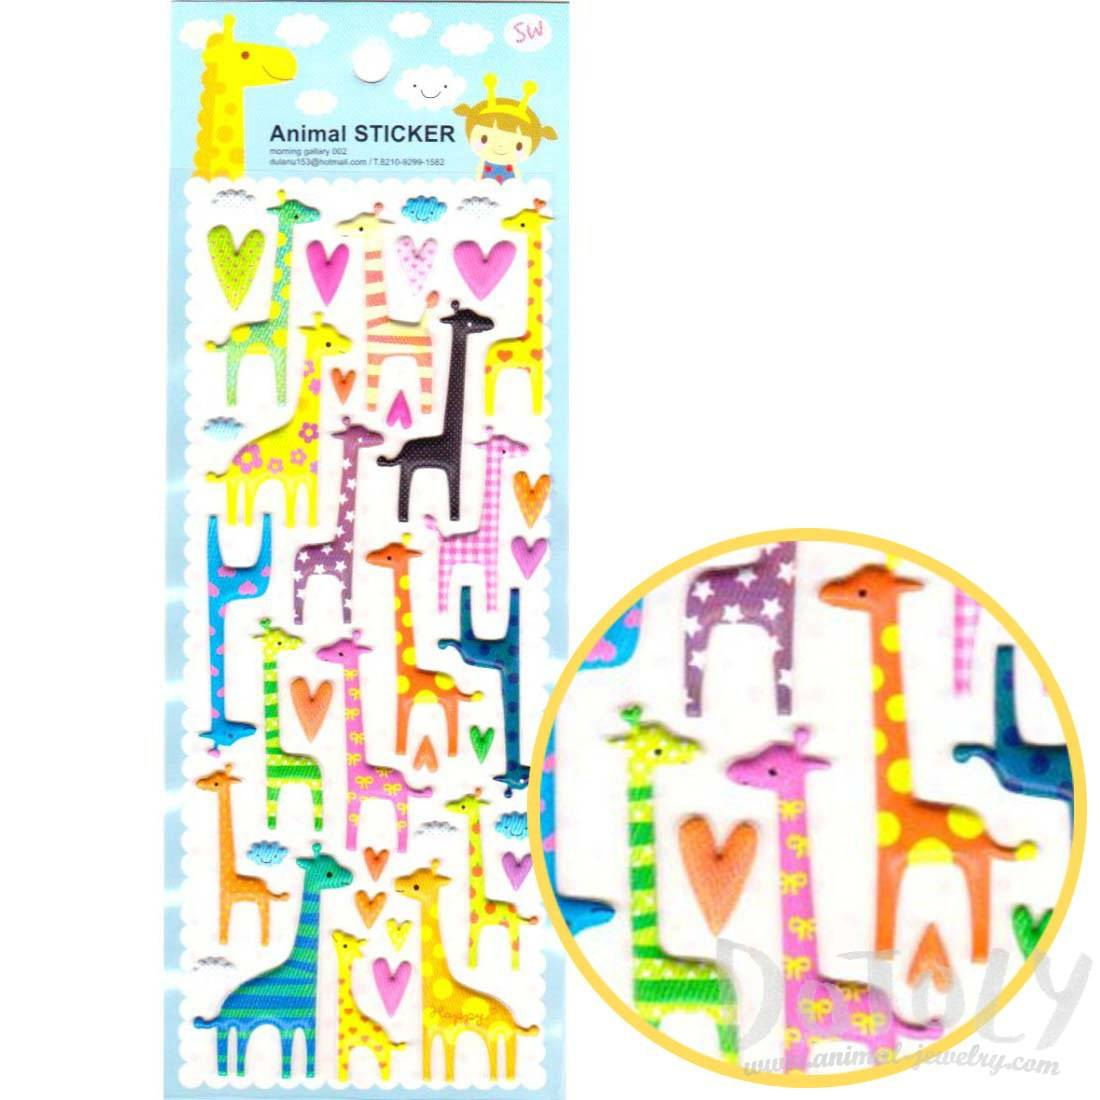 Colorful Printed Giraffe Shaped Animal Puffy Stickers